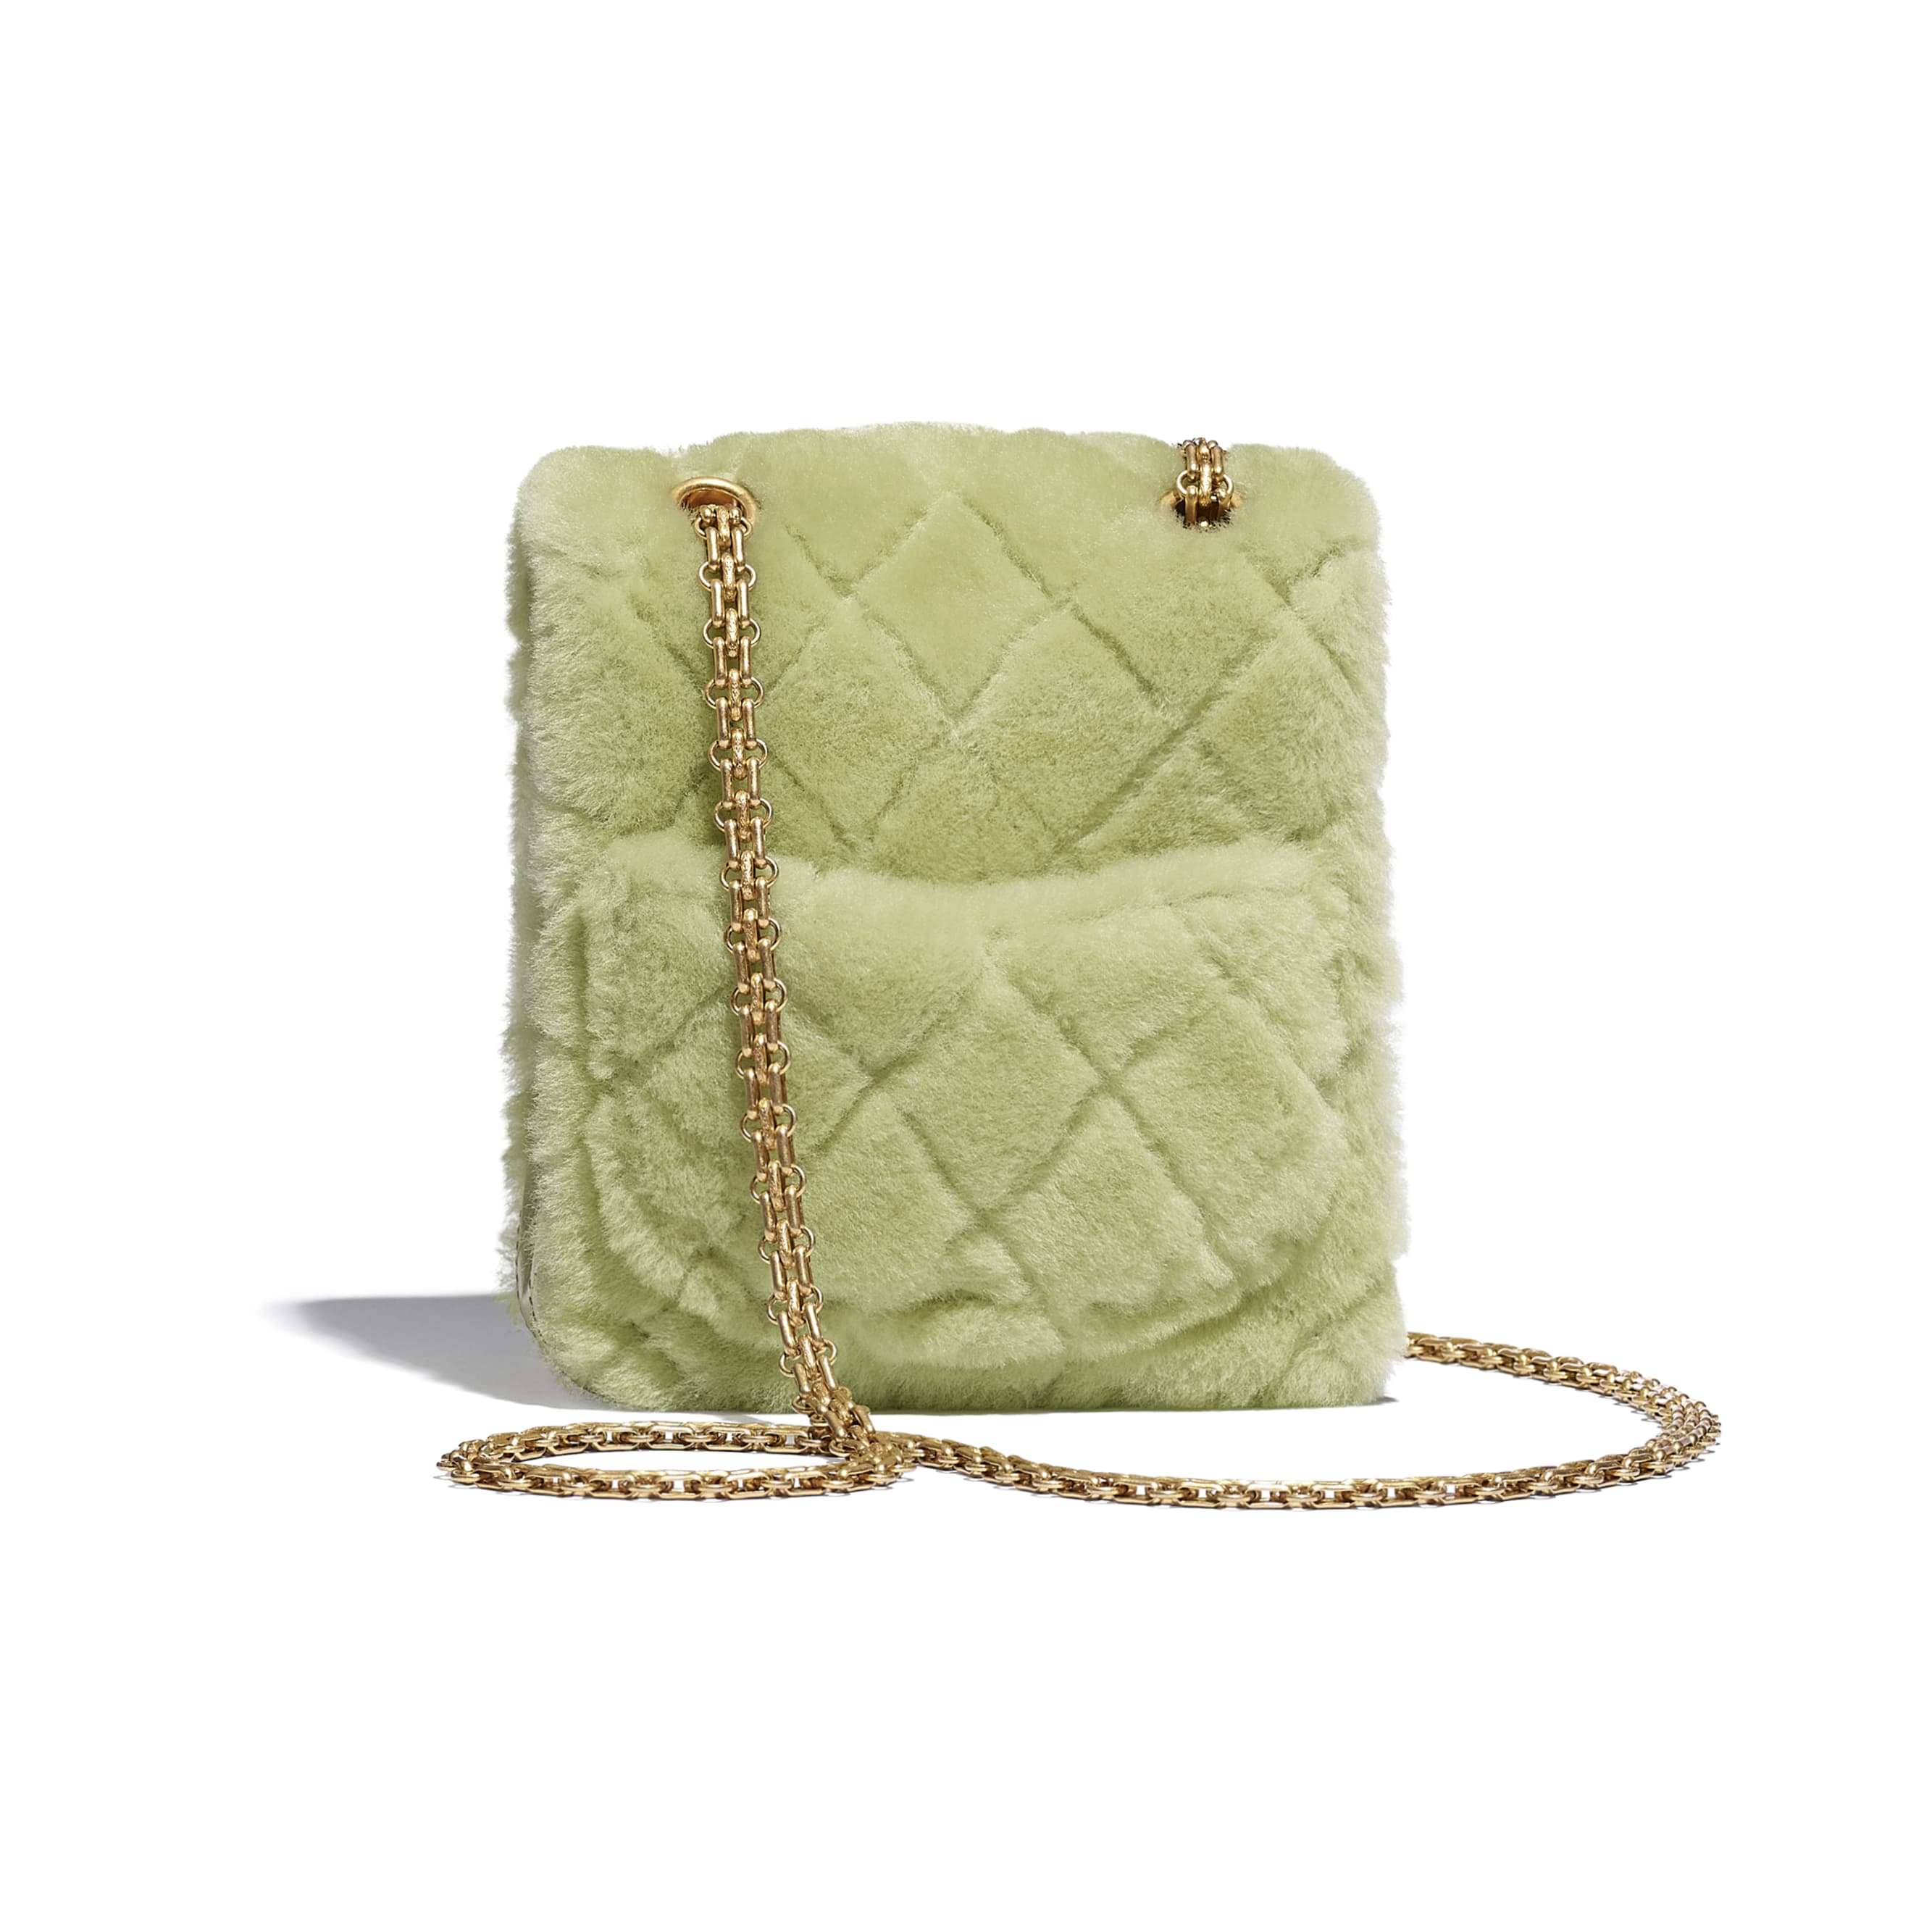 Mini 2.55 Handbag - Green - Shearling Lambskin, Aged Calfskin & Gold-Tone Metal - CHANEL - Alternative view - see standard sized version